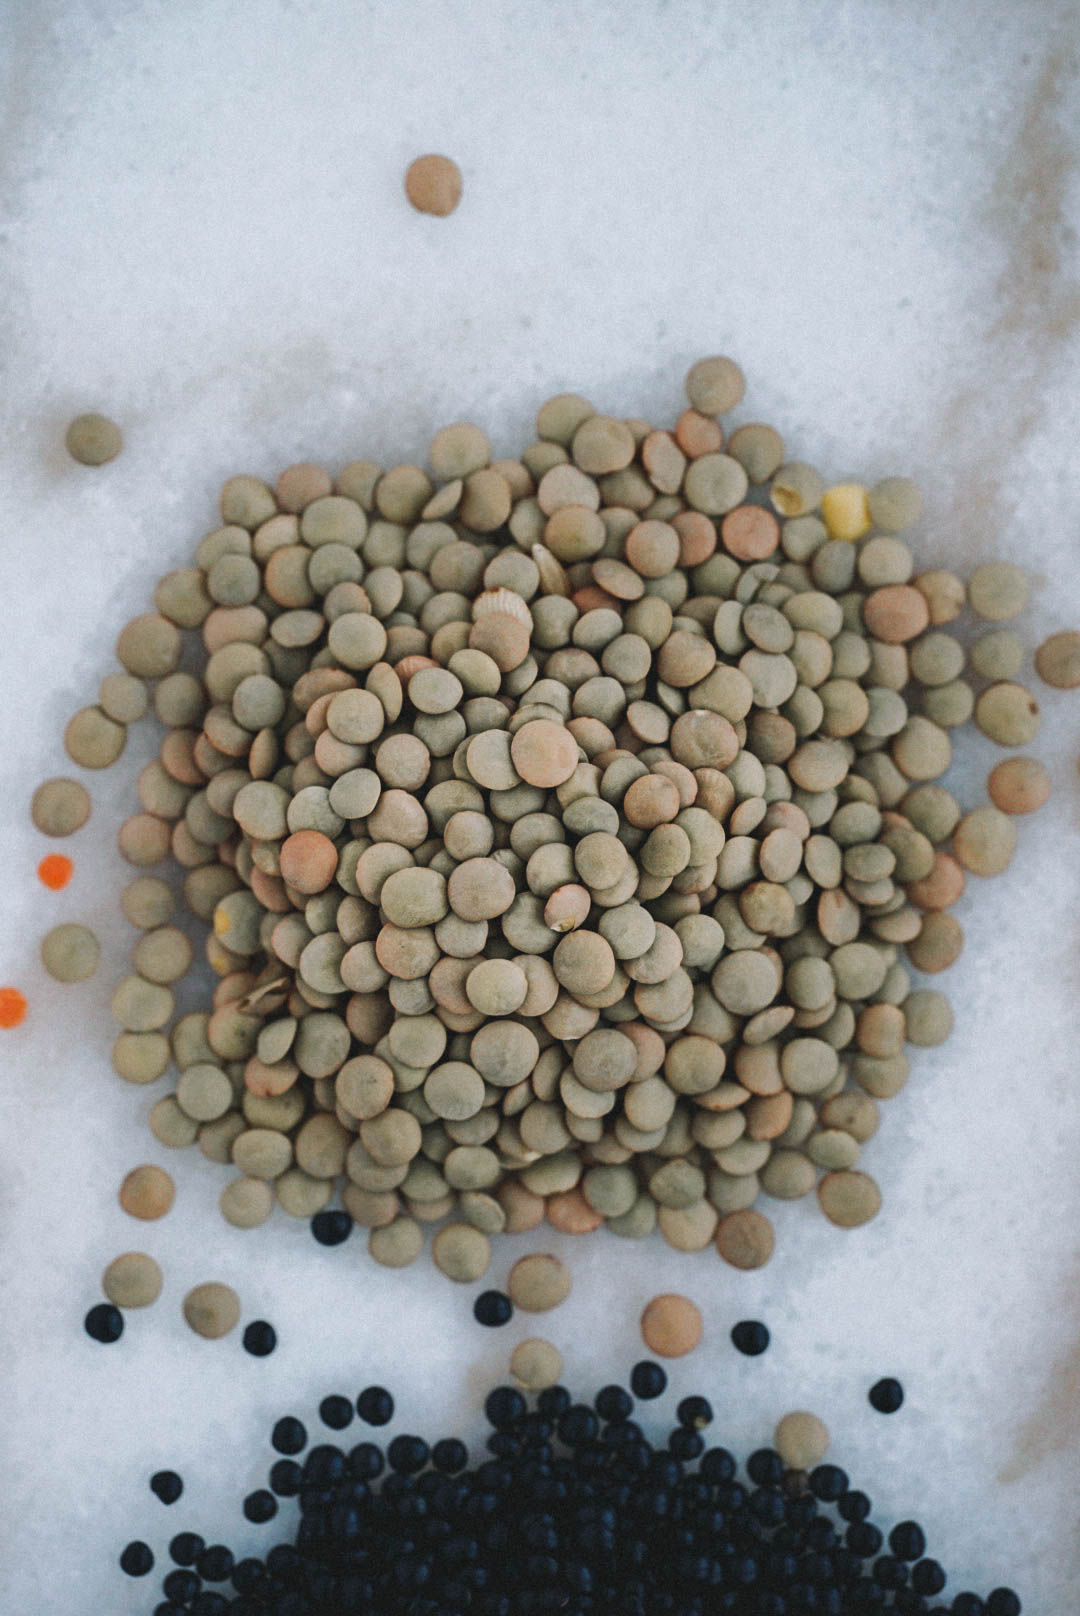 green lentils on white marble counter